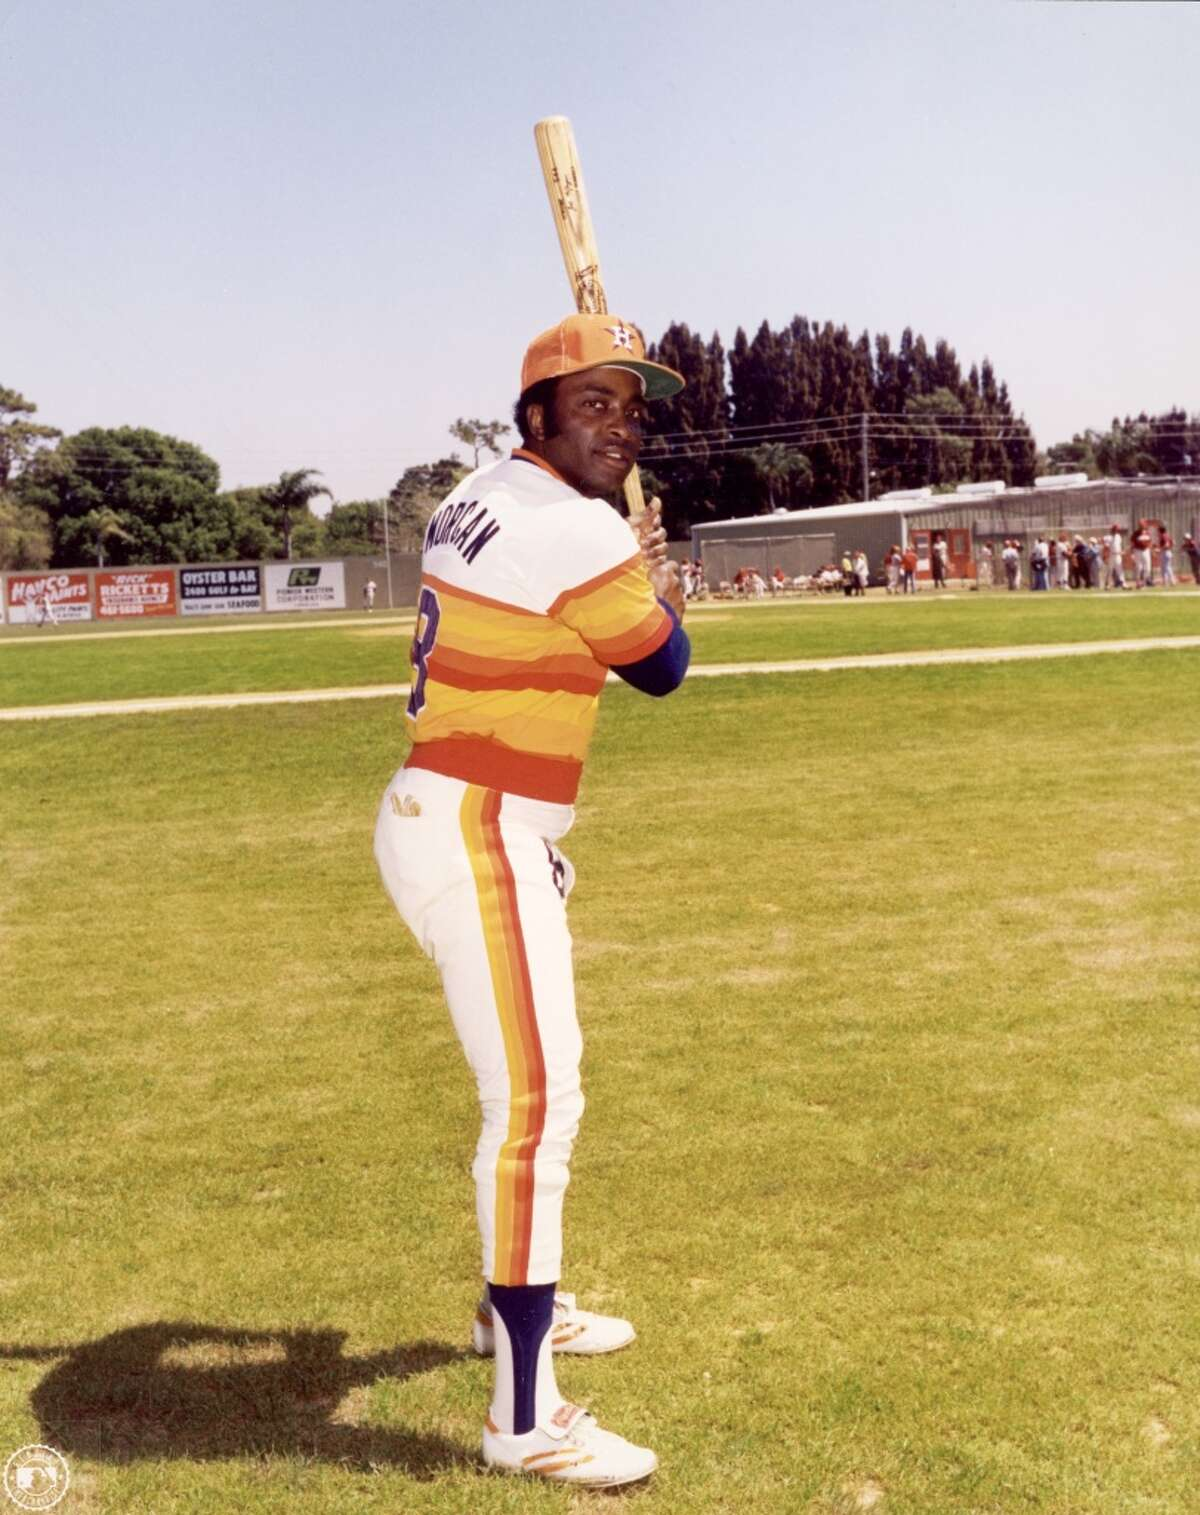 THE WORST Nov. 29, 1971: Astros deal 2B Joe Morgan to Cincinnati for 1B Lee May and 2B Tommy Helms. May was one of the game's best sluggers and hit 57 home runs in two seasons with the Astros before the team dealt him for Enos Cabell in 1974. Helms had a solid career with the Astros, but Joe Morgan went on to become a Hall of Famer and one of the best second basemen of all-time.